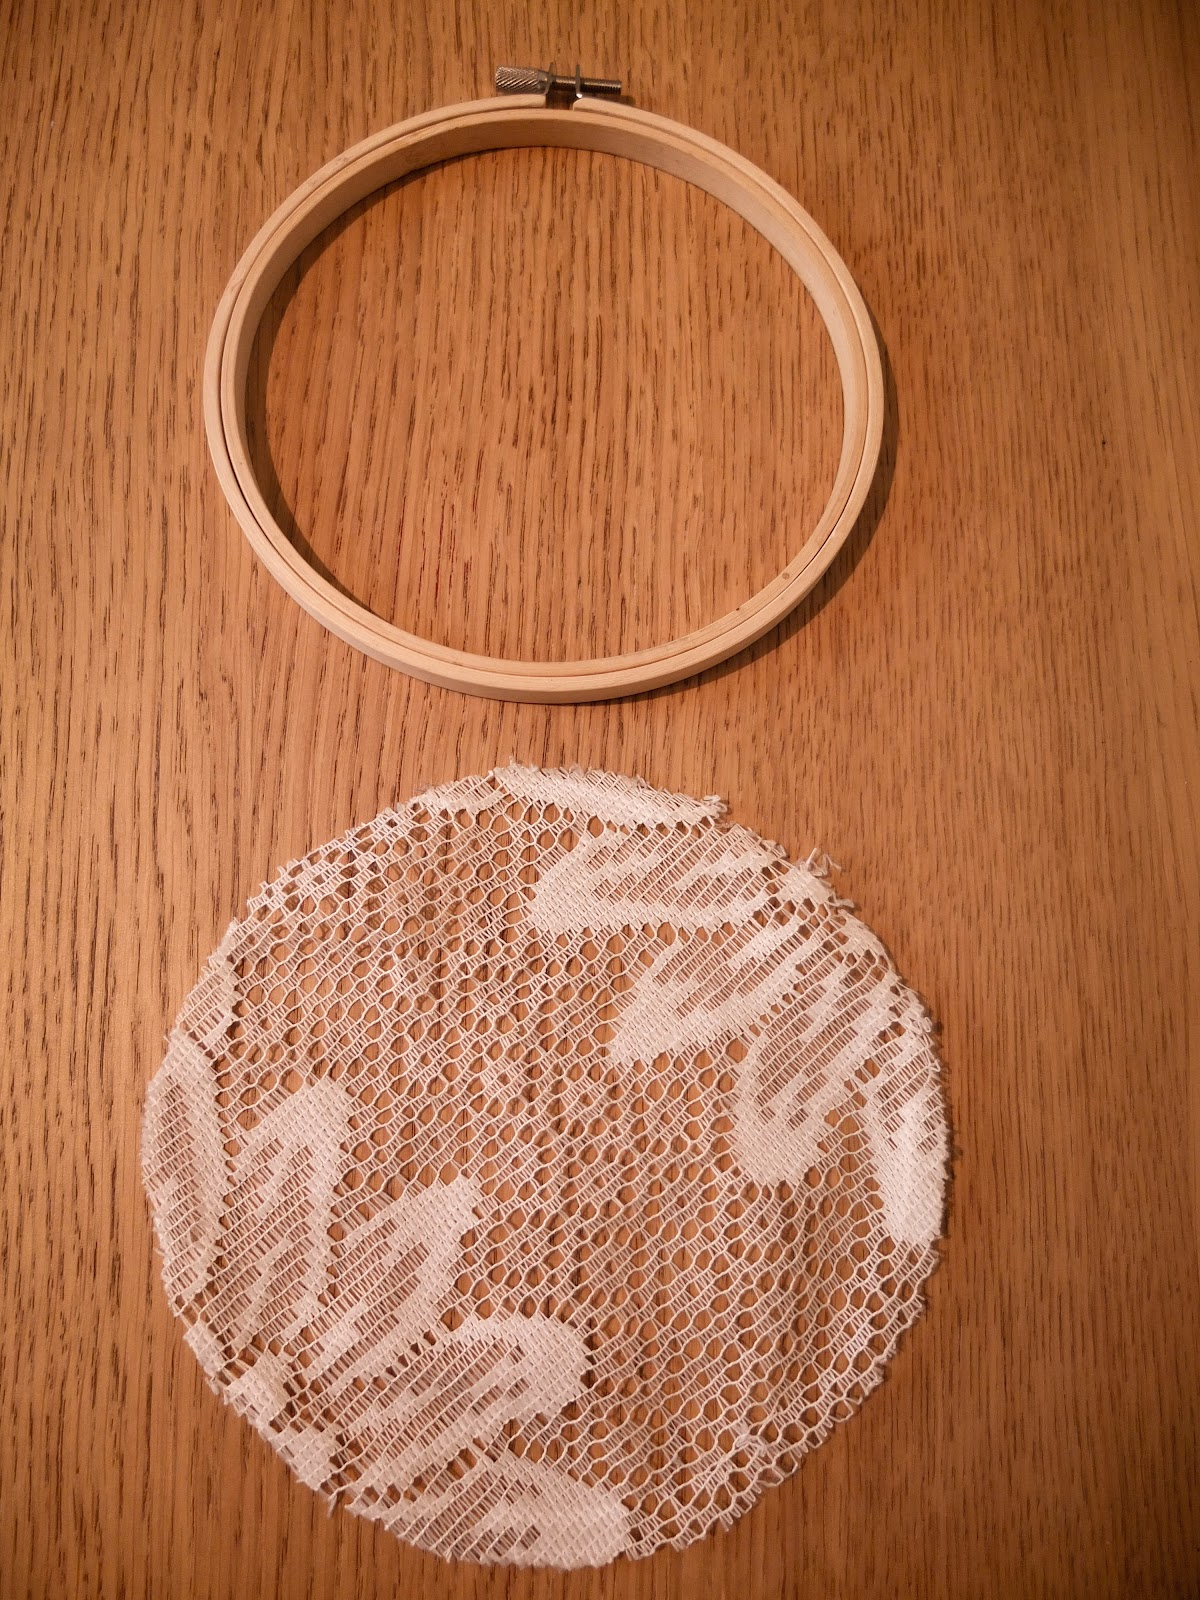 Show and tea lace embroidery hoops